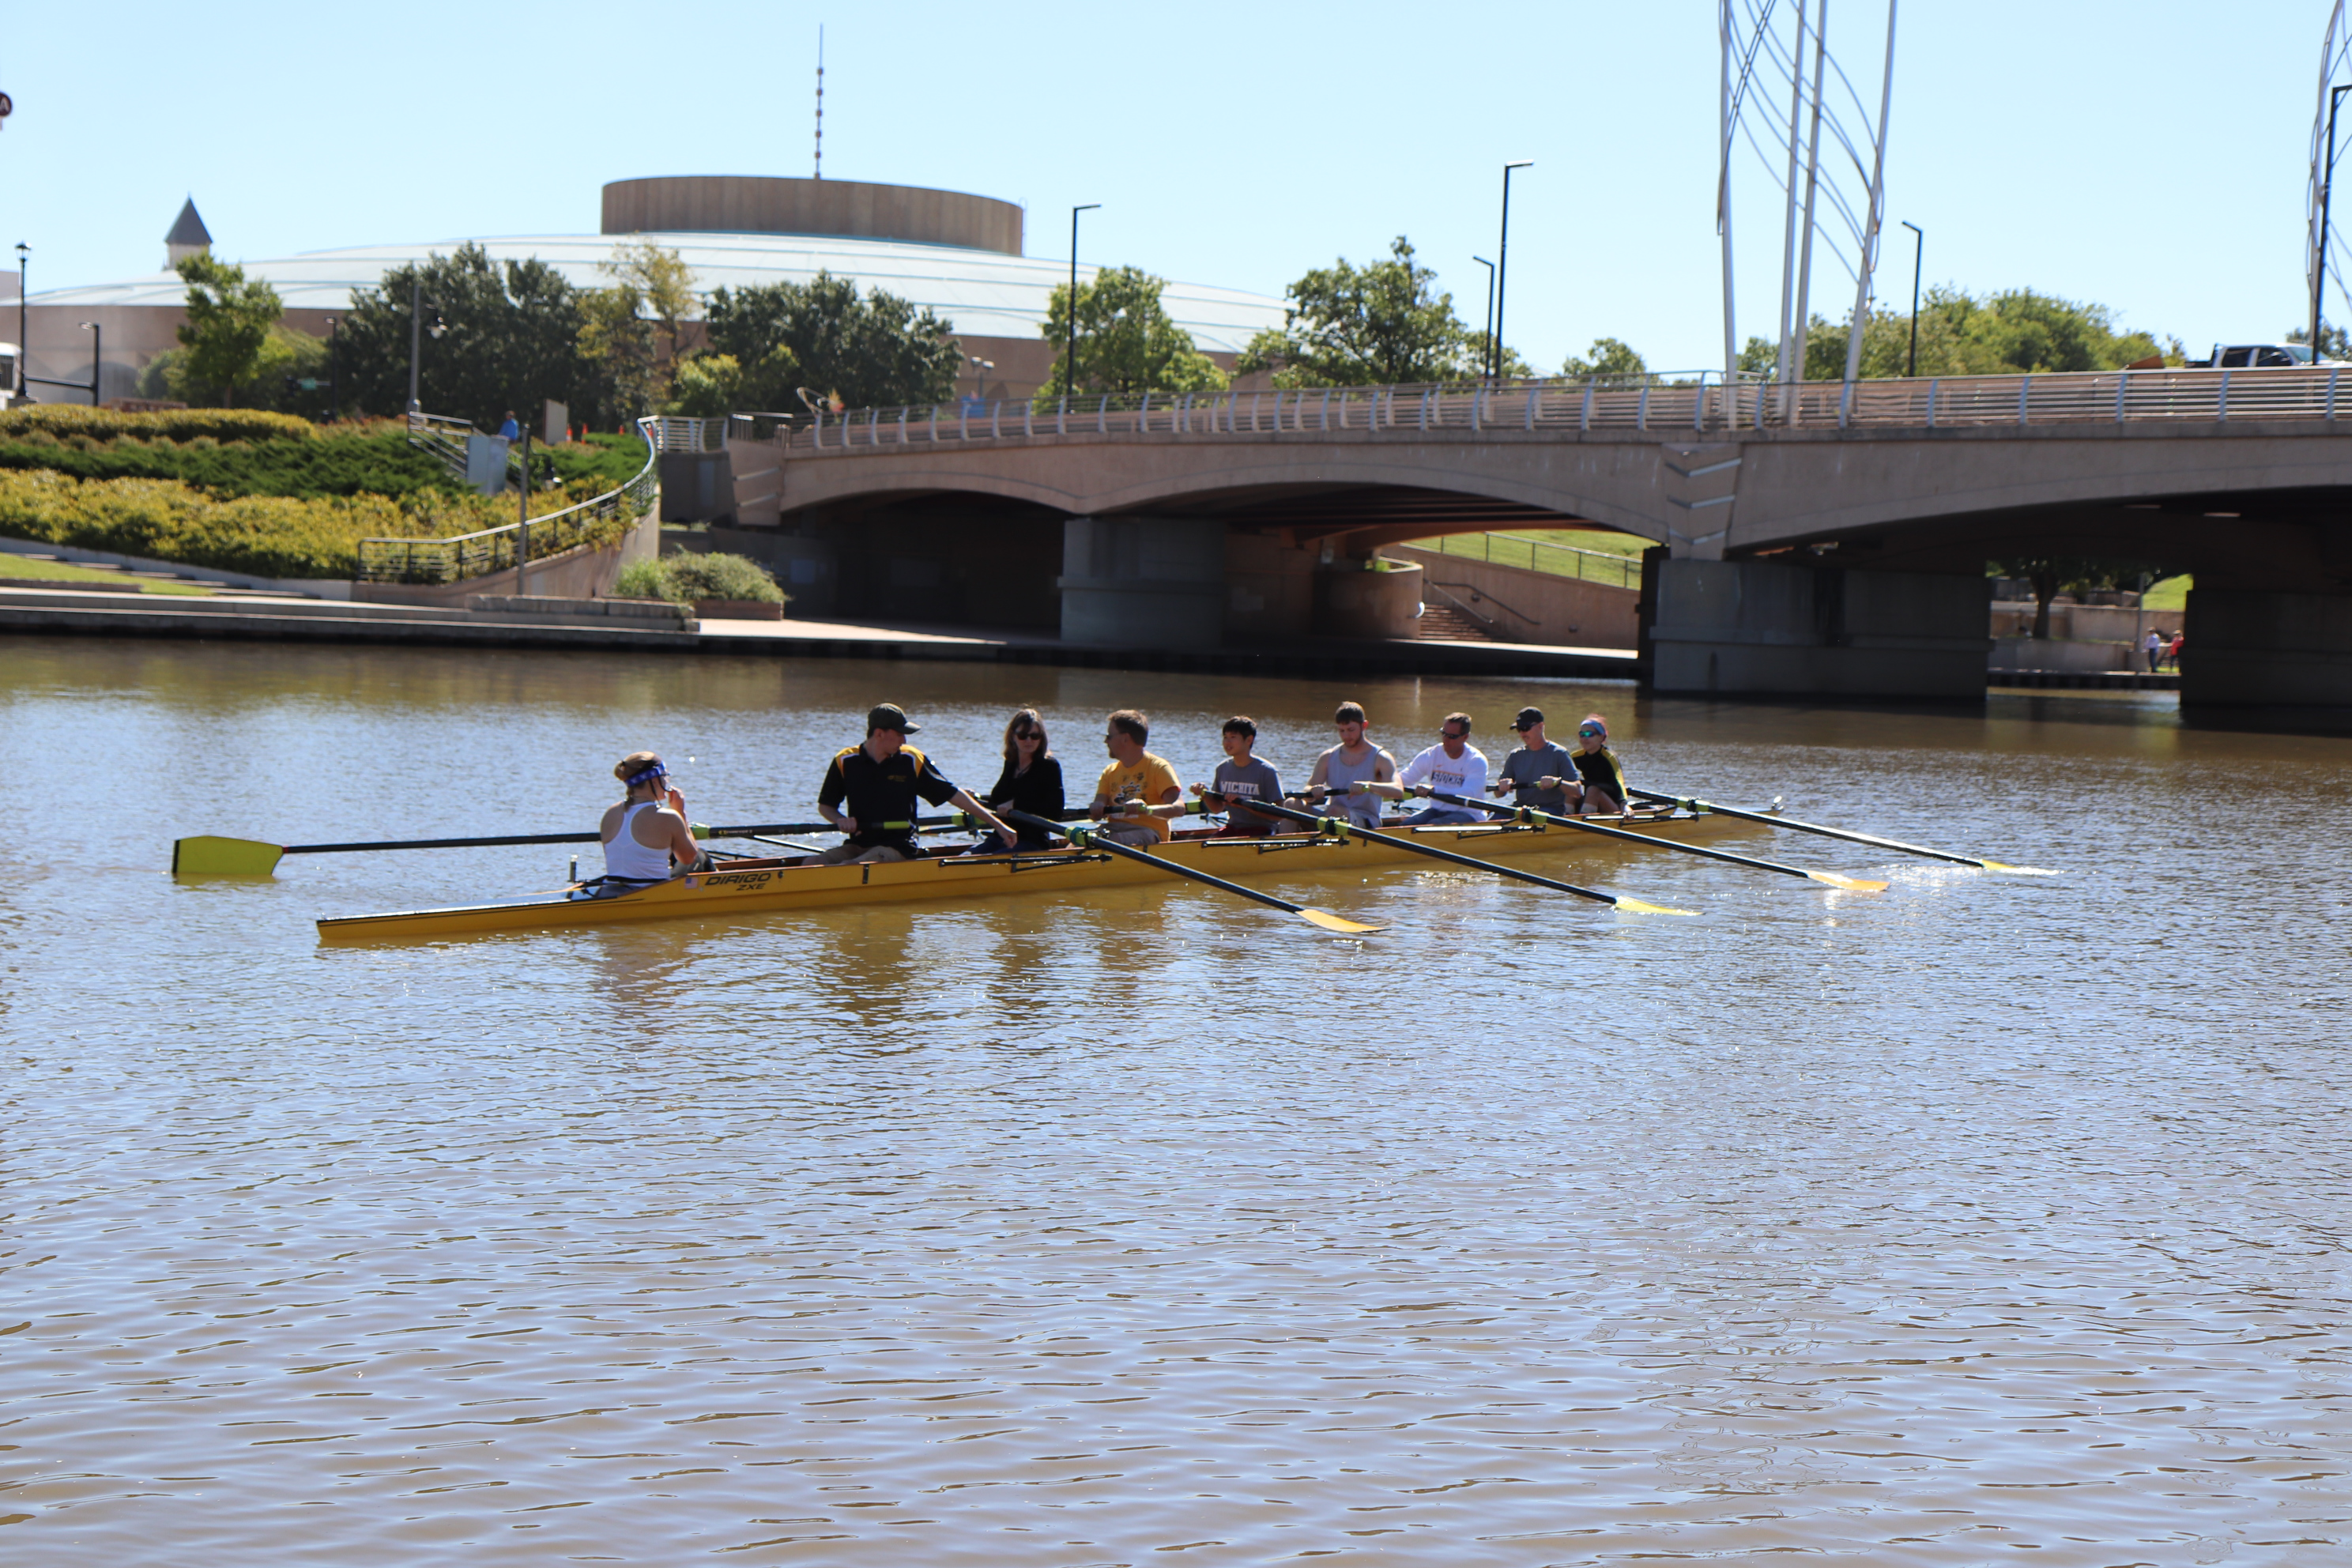 A family fun row boat on the water, filled with a mixture of rowers and parents.